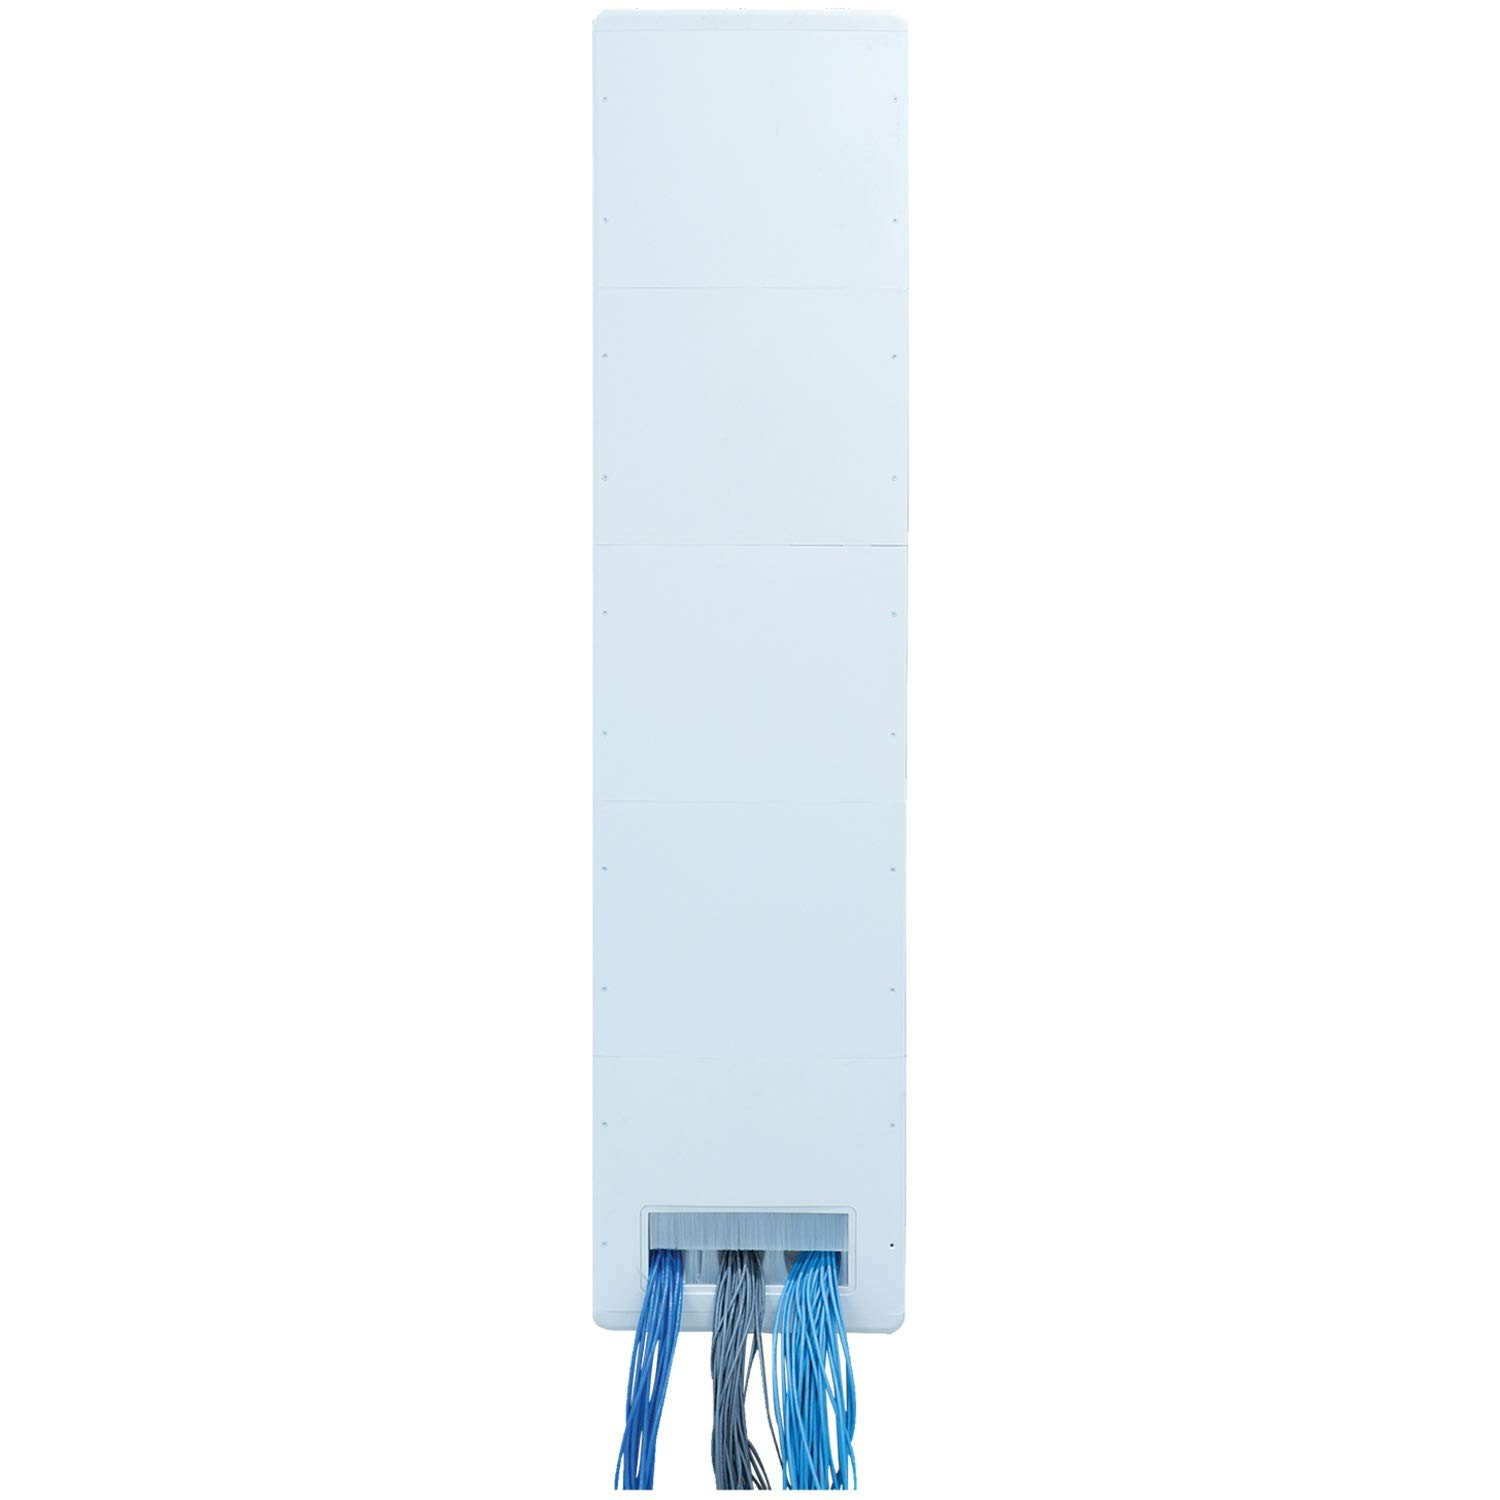 DataComm Electronics RA51006 DCMCT752P 75'' Cable Trench System 20'' L x 18.2'' W x 13'' H White by Datacomm Electronics (Image #3)